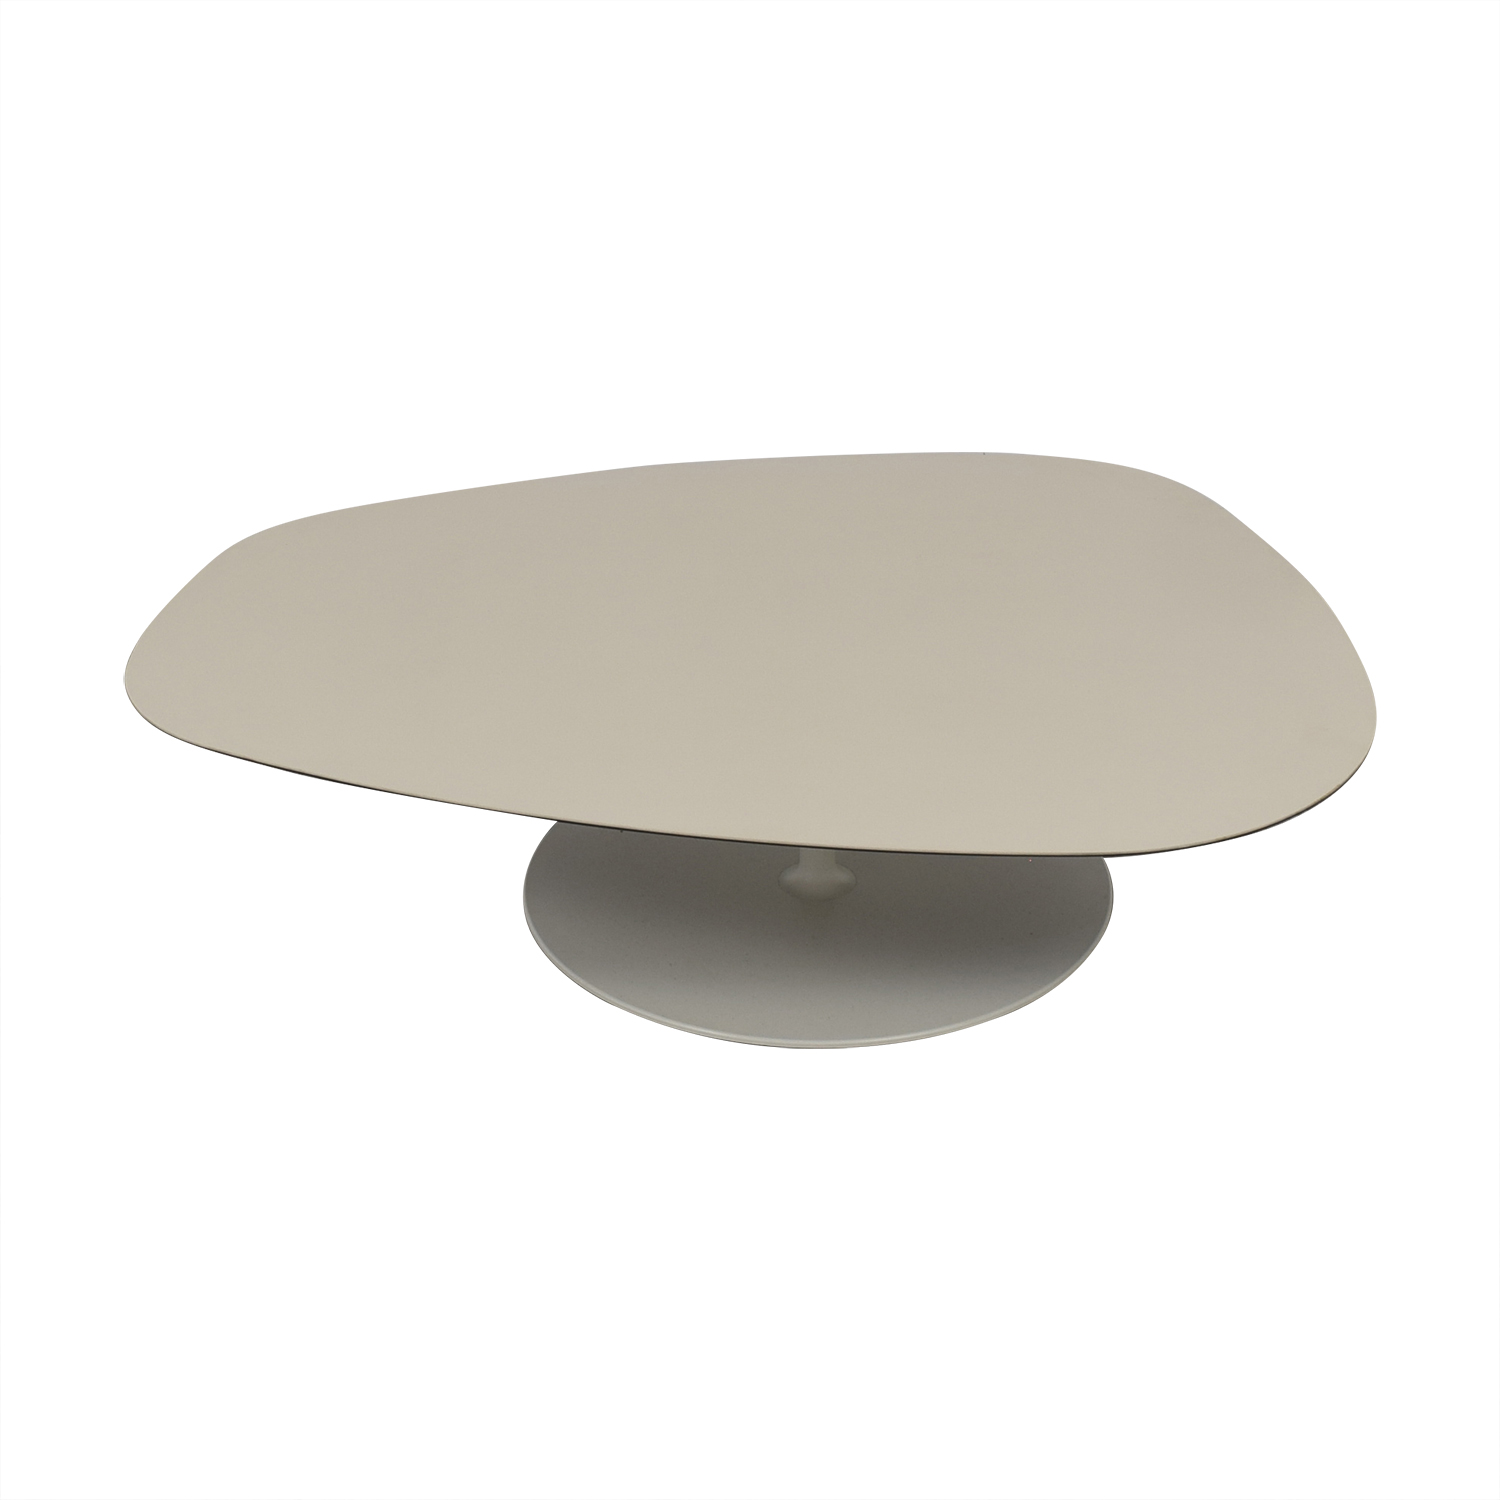 Moroso Moroso Phoenix White Rounded Triangular Table on sale